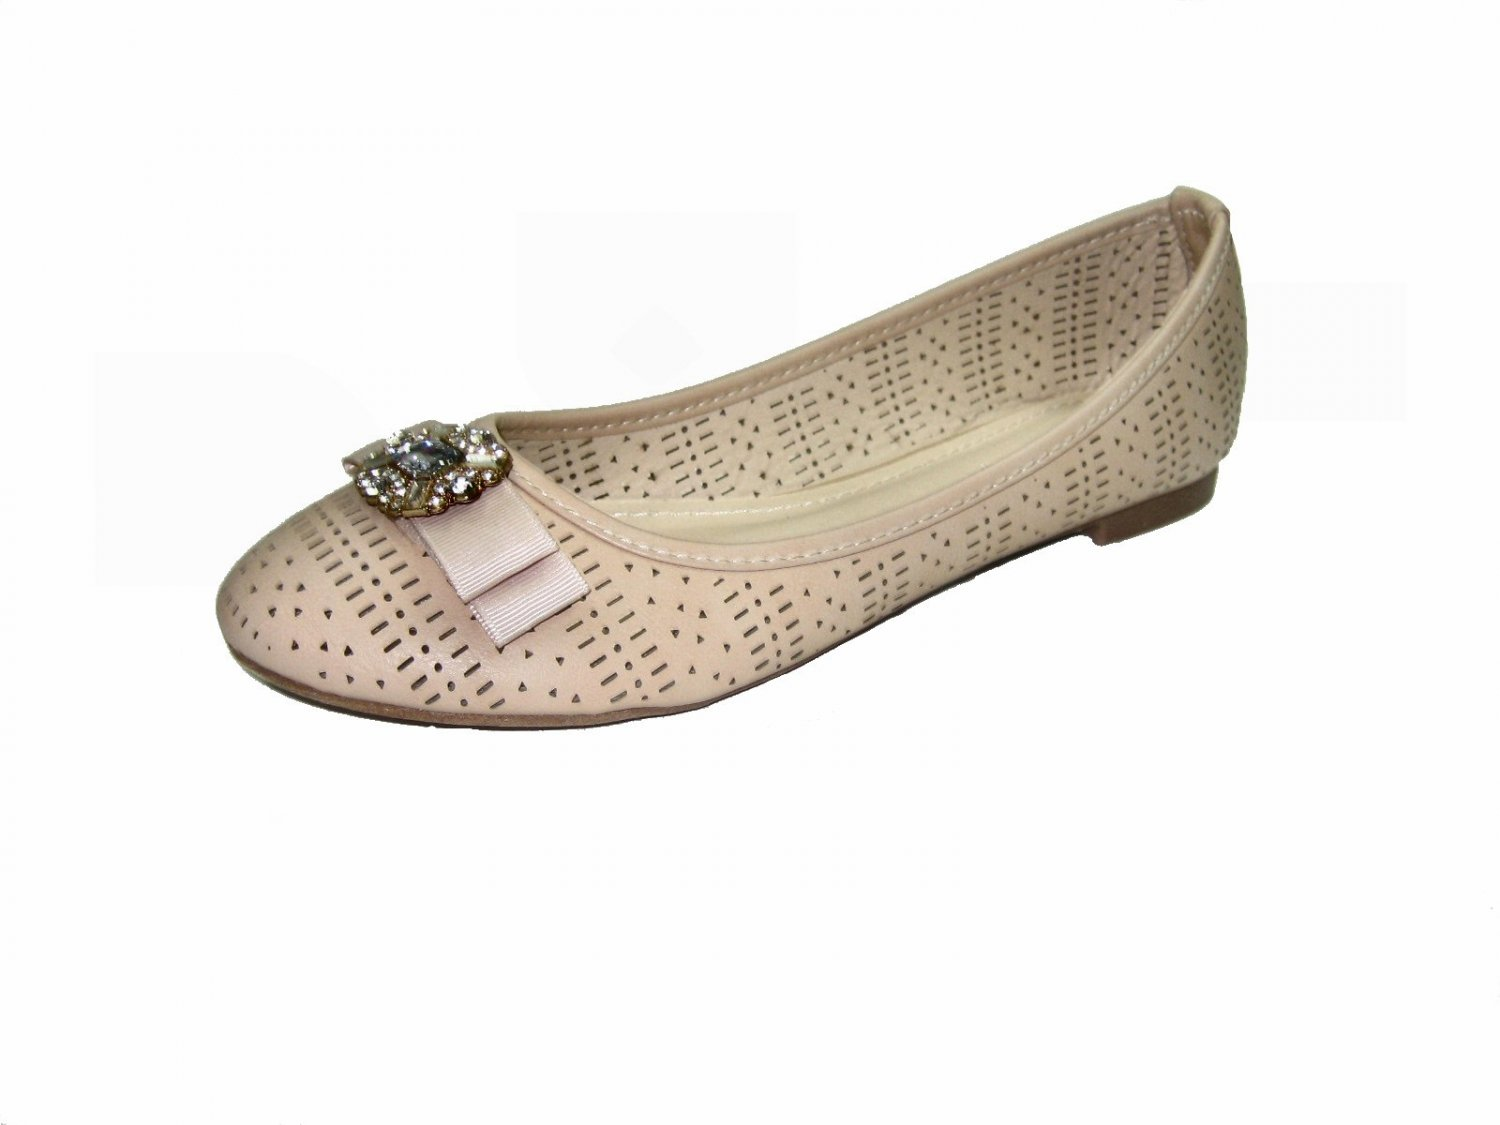 Top Moda SB-25 ballerina flats slip on pumps rhinestone bejeweled bow toe shoes beige size 6.5